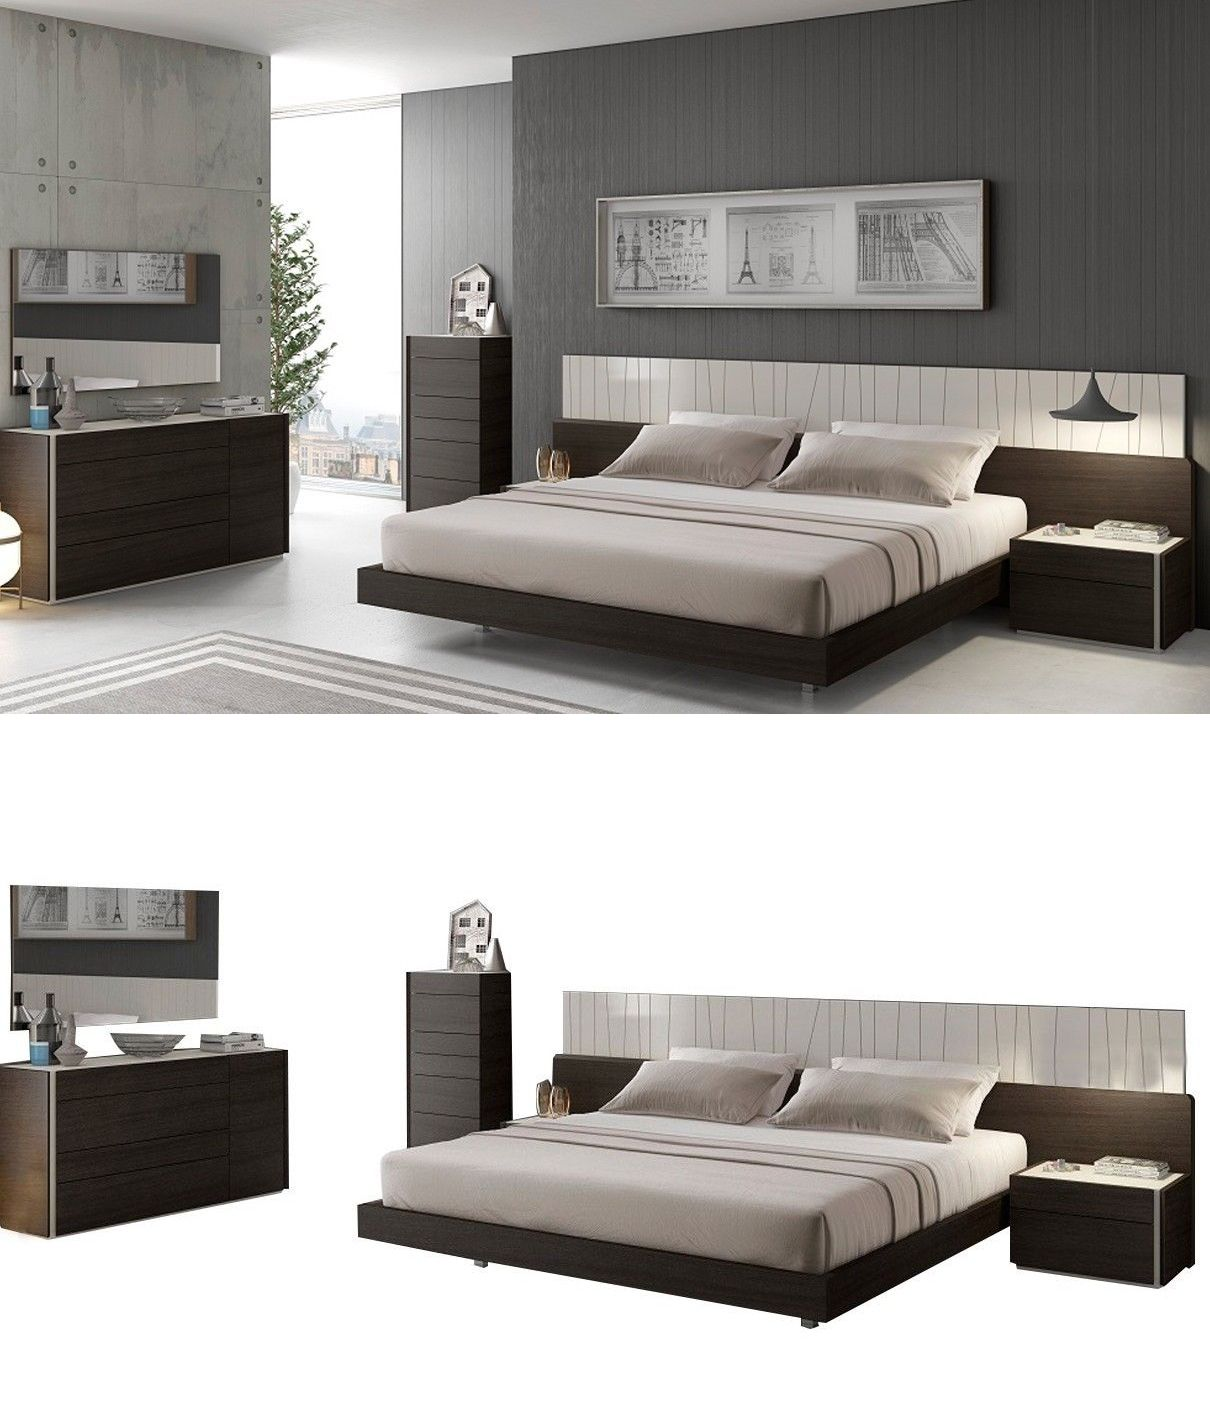 Bedroom Sets 20480 Jandm Porto Contemporary King Bedroom Set In Light Grey And Wenge 5 Piece Buy I King Bedroom Sets Modern King Bedroom Sets Bedroom Sets